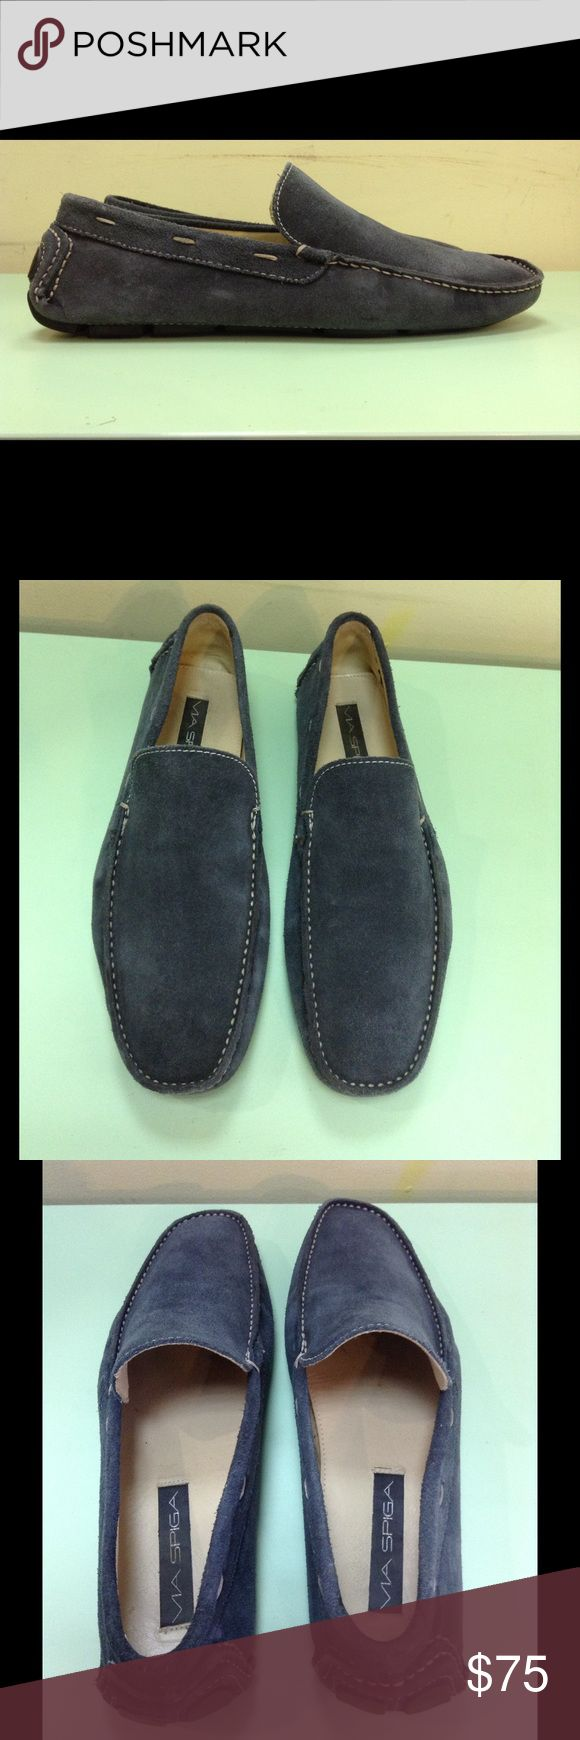 Via Spiga Loafers for Men Greyish, suede. In Excellent used condition! 😘👍 Via Spiga Shoes